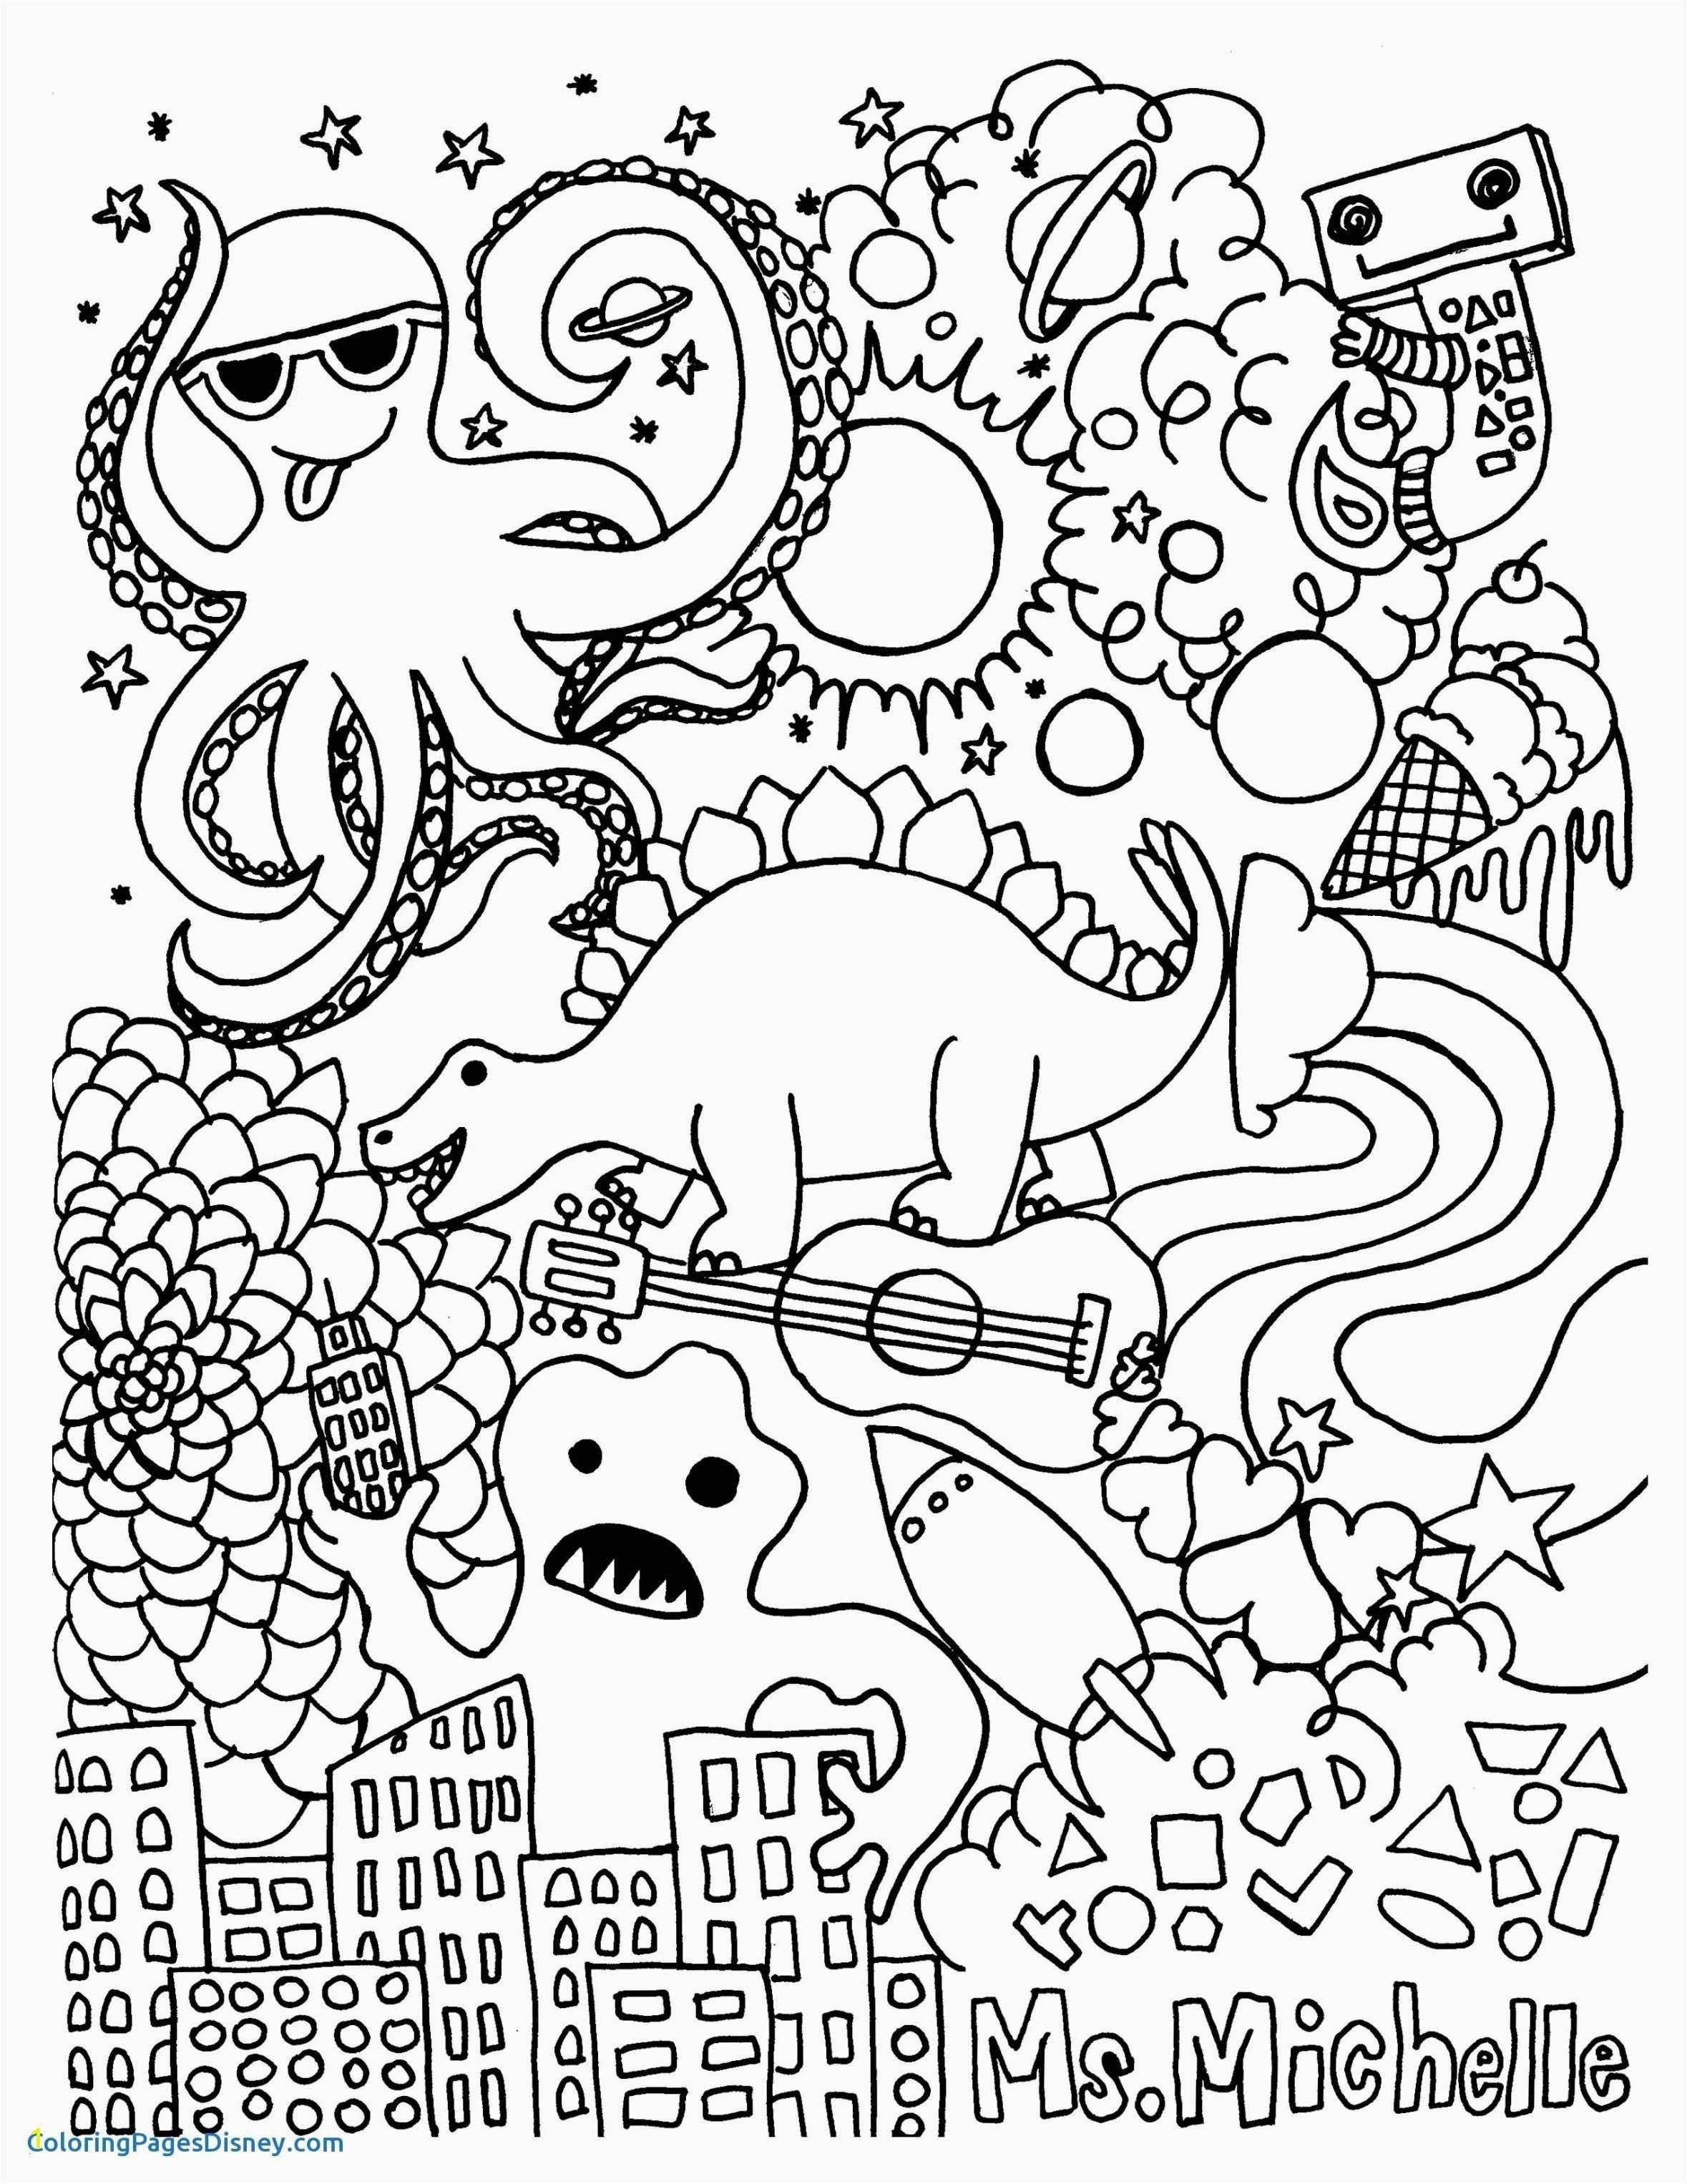 Free Frozen Coloring Pages Fresh Coloring Pages Freeing Pages Pdf Format Printable Disney Coloring Pages Inspirational Coloring Books Fall Coloring Pages